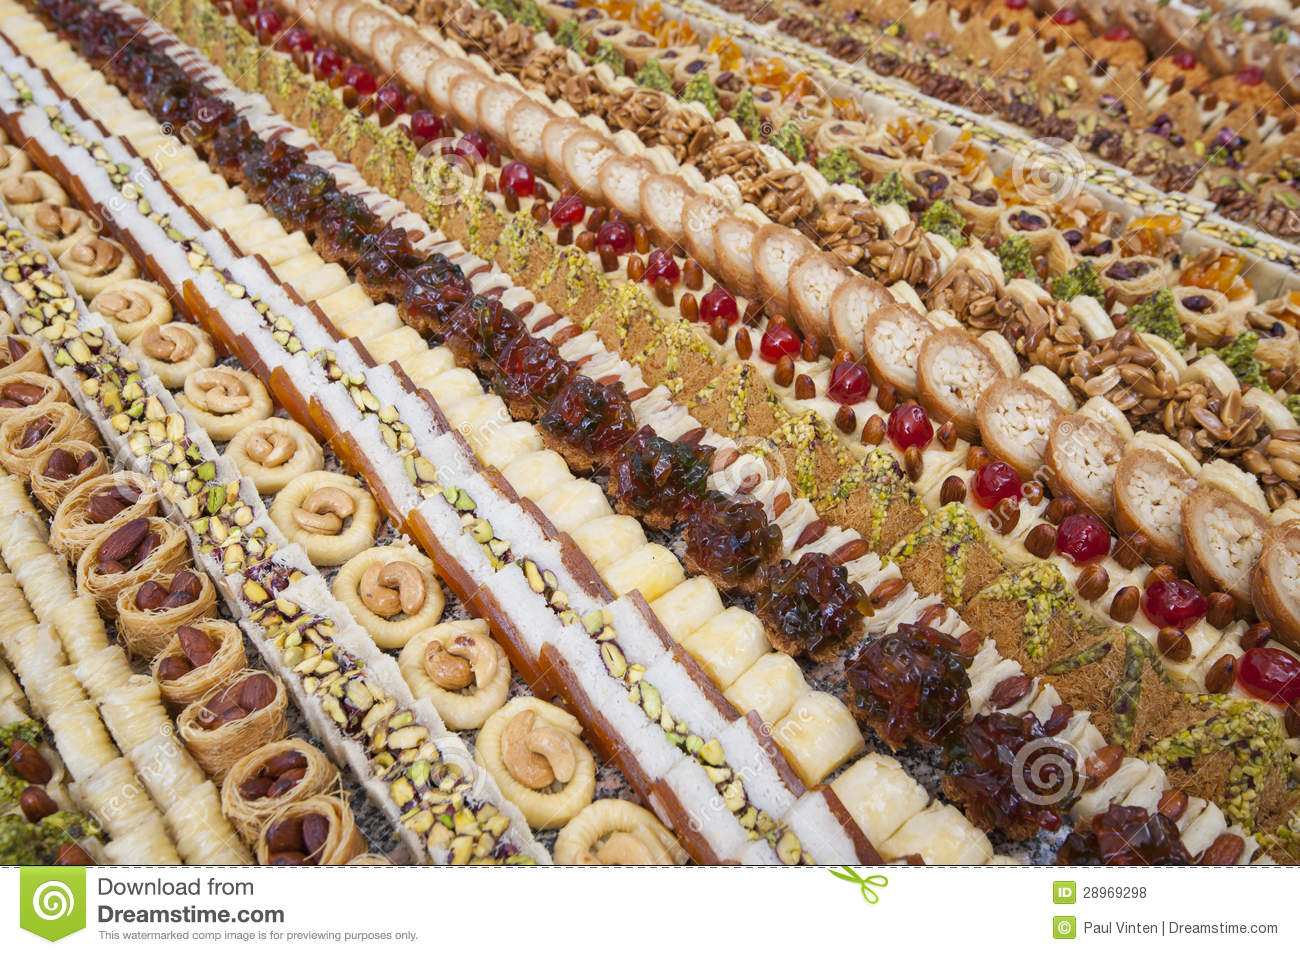 http://thumbs.dreamstime.com/z/s%C3%A9lection-des-petits-fours-28969298.jpg